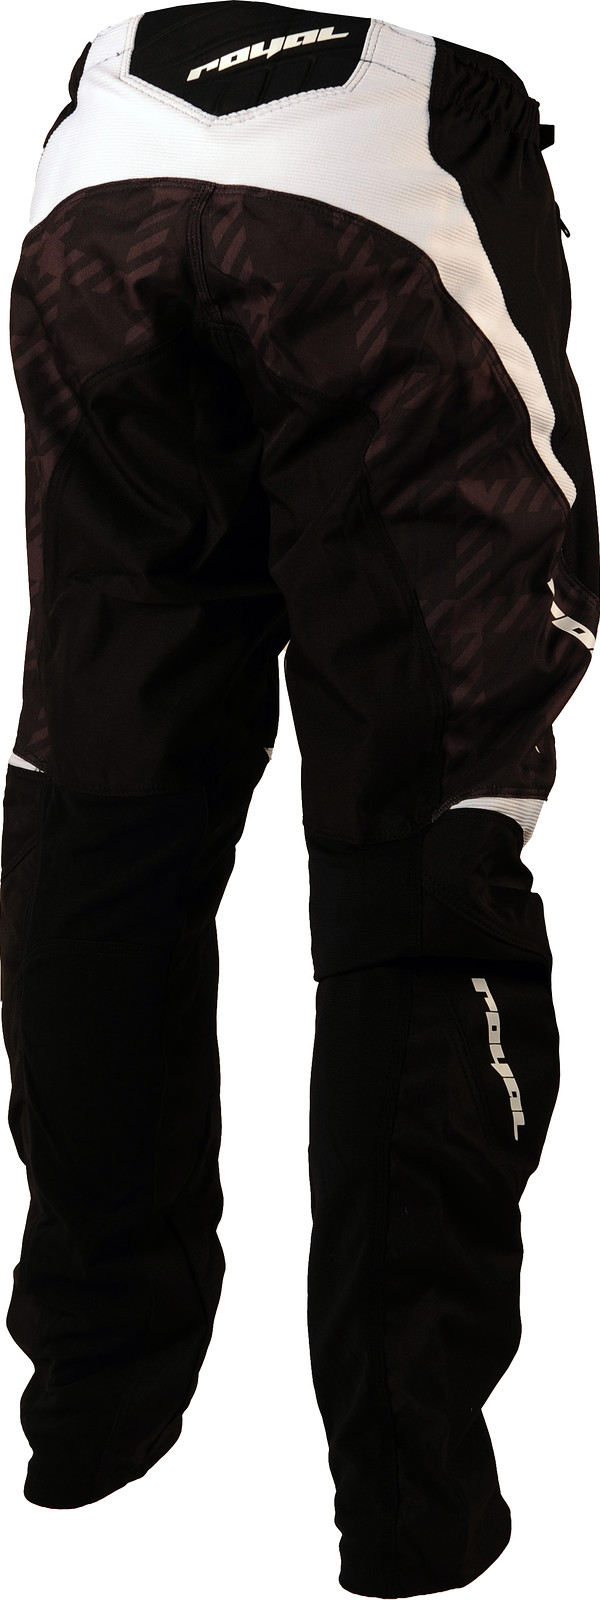 Royal 2011 SP-247 Pants Pants-SP247-Black-Back